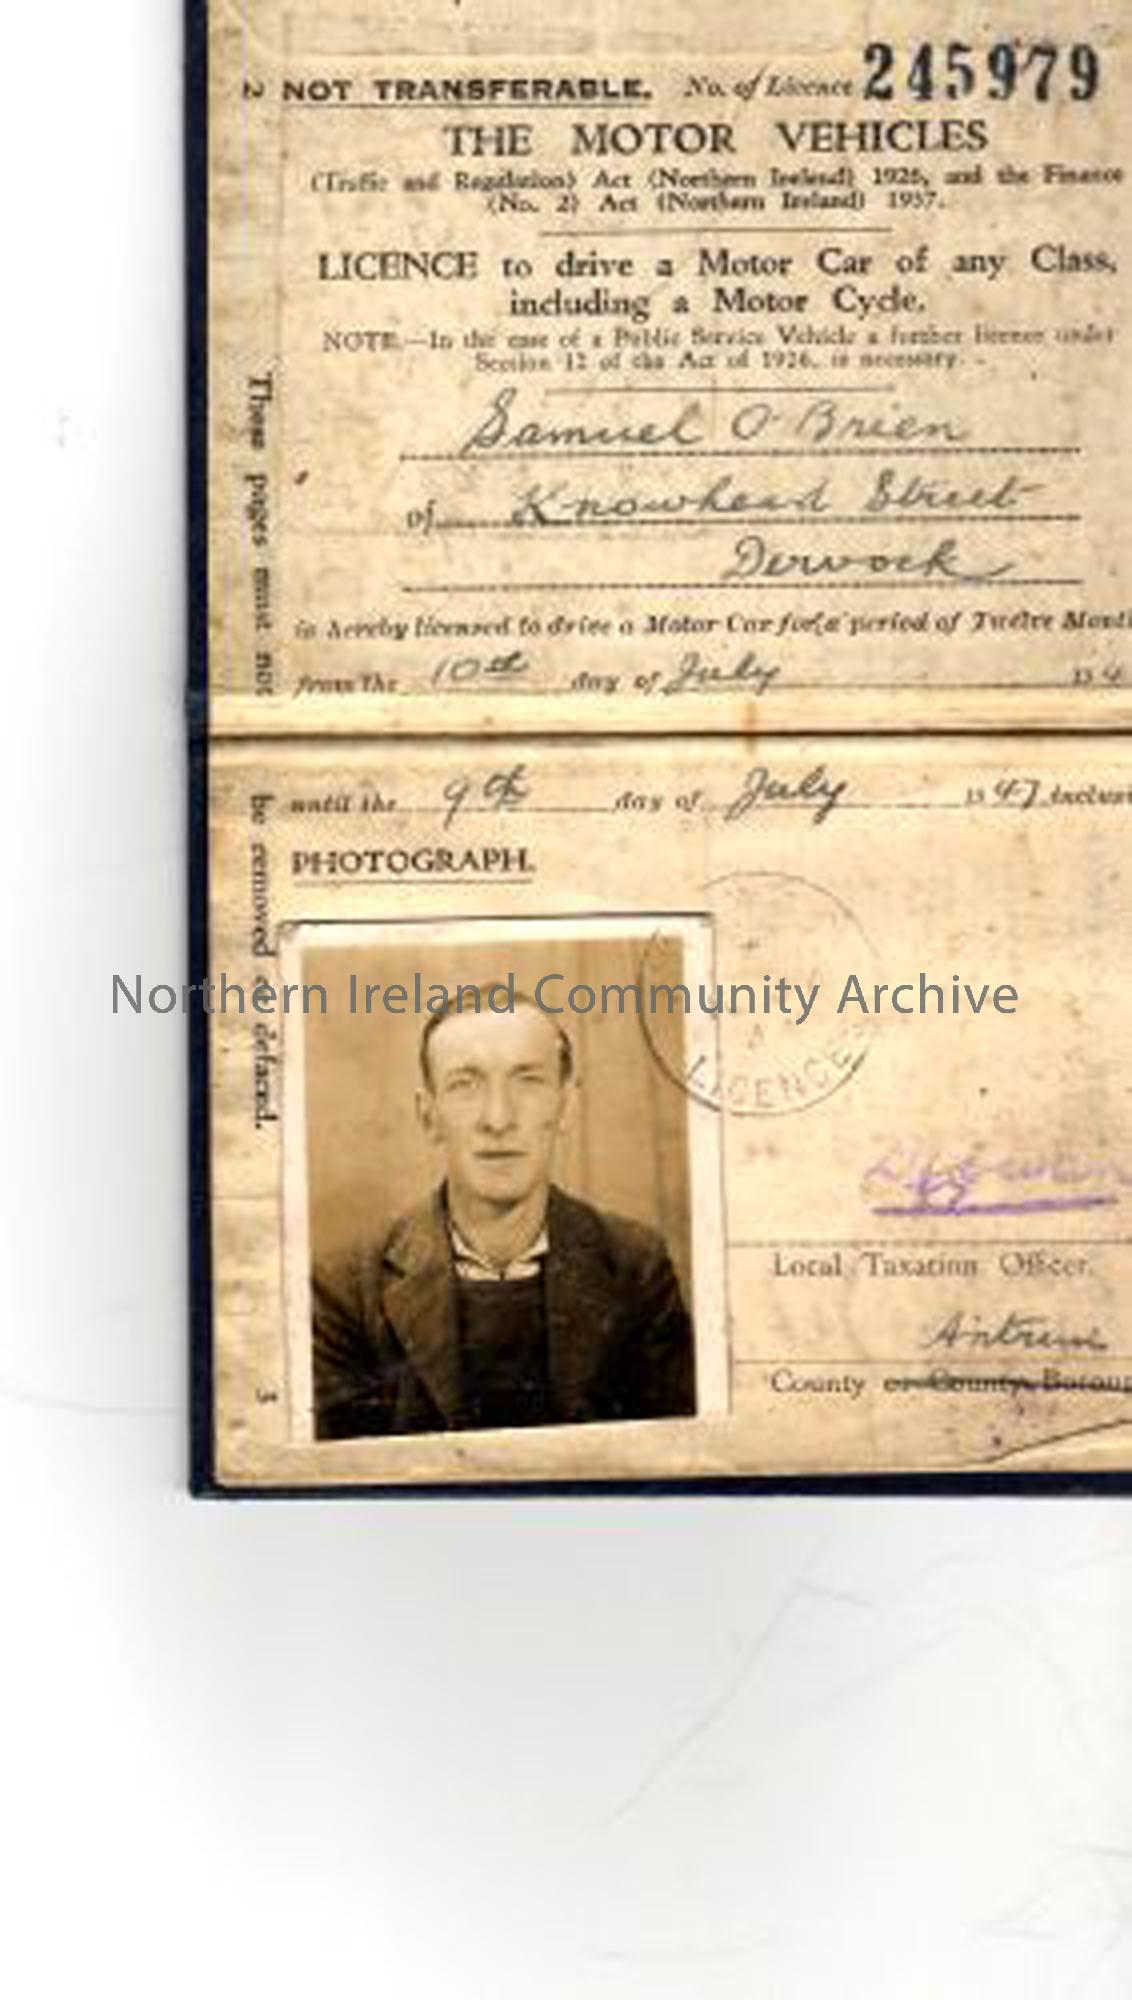 Sammy O'Brien, Knowhead Street, Dervock, driving licence. Sammy O'Brien was a regimental piper during the war. He later, at the behest of Dervock Lodge, started the village's pipe band. (5463)